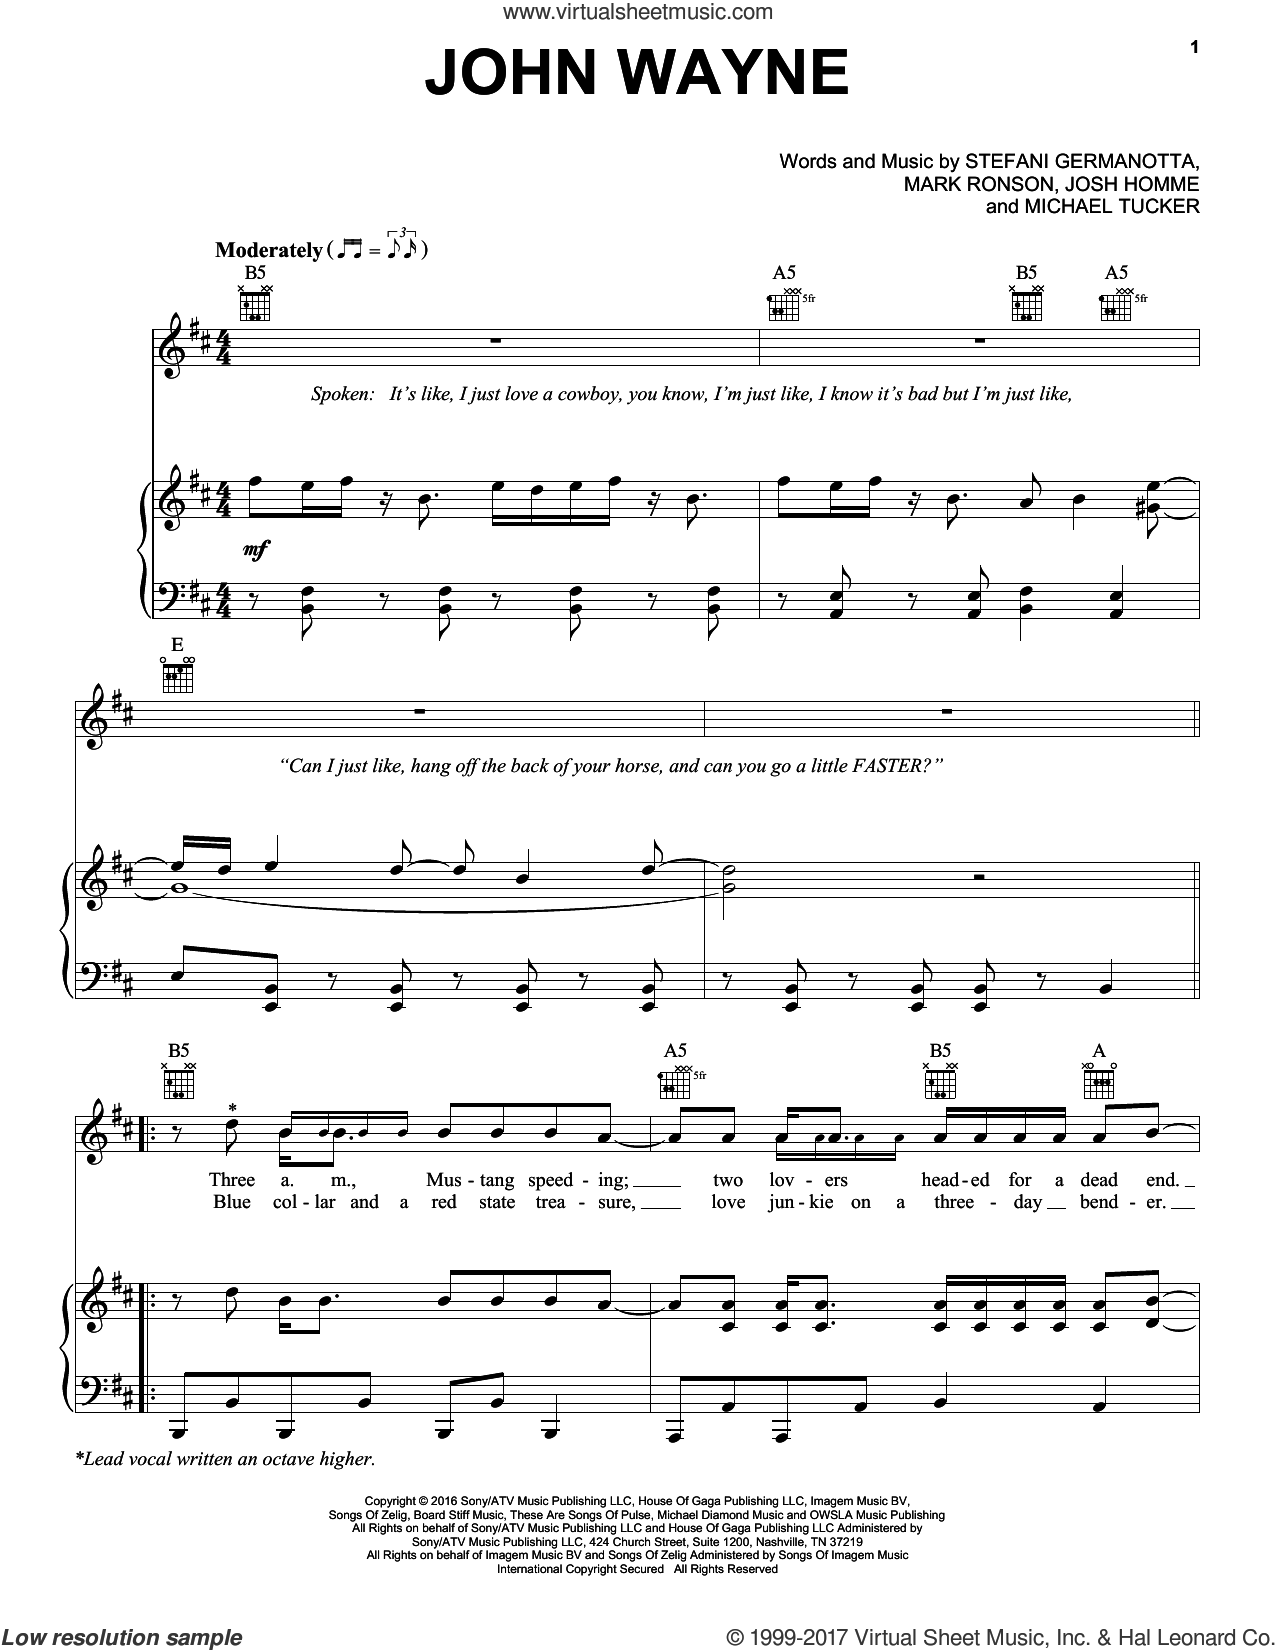 John Wayne sheet music for voice, piano or guitar by Lady Gaga, Josh Homme, Mark Ronson and Michael Tucker, intermediate skill level